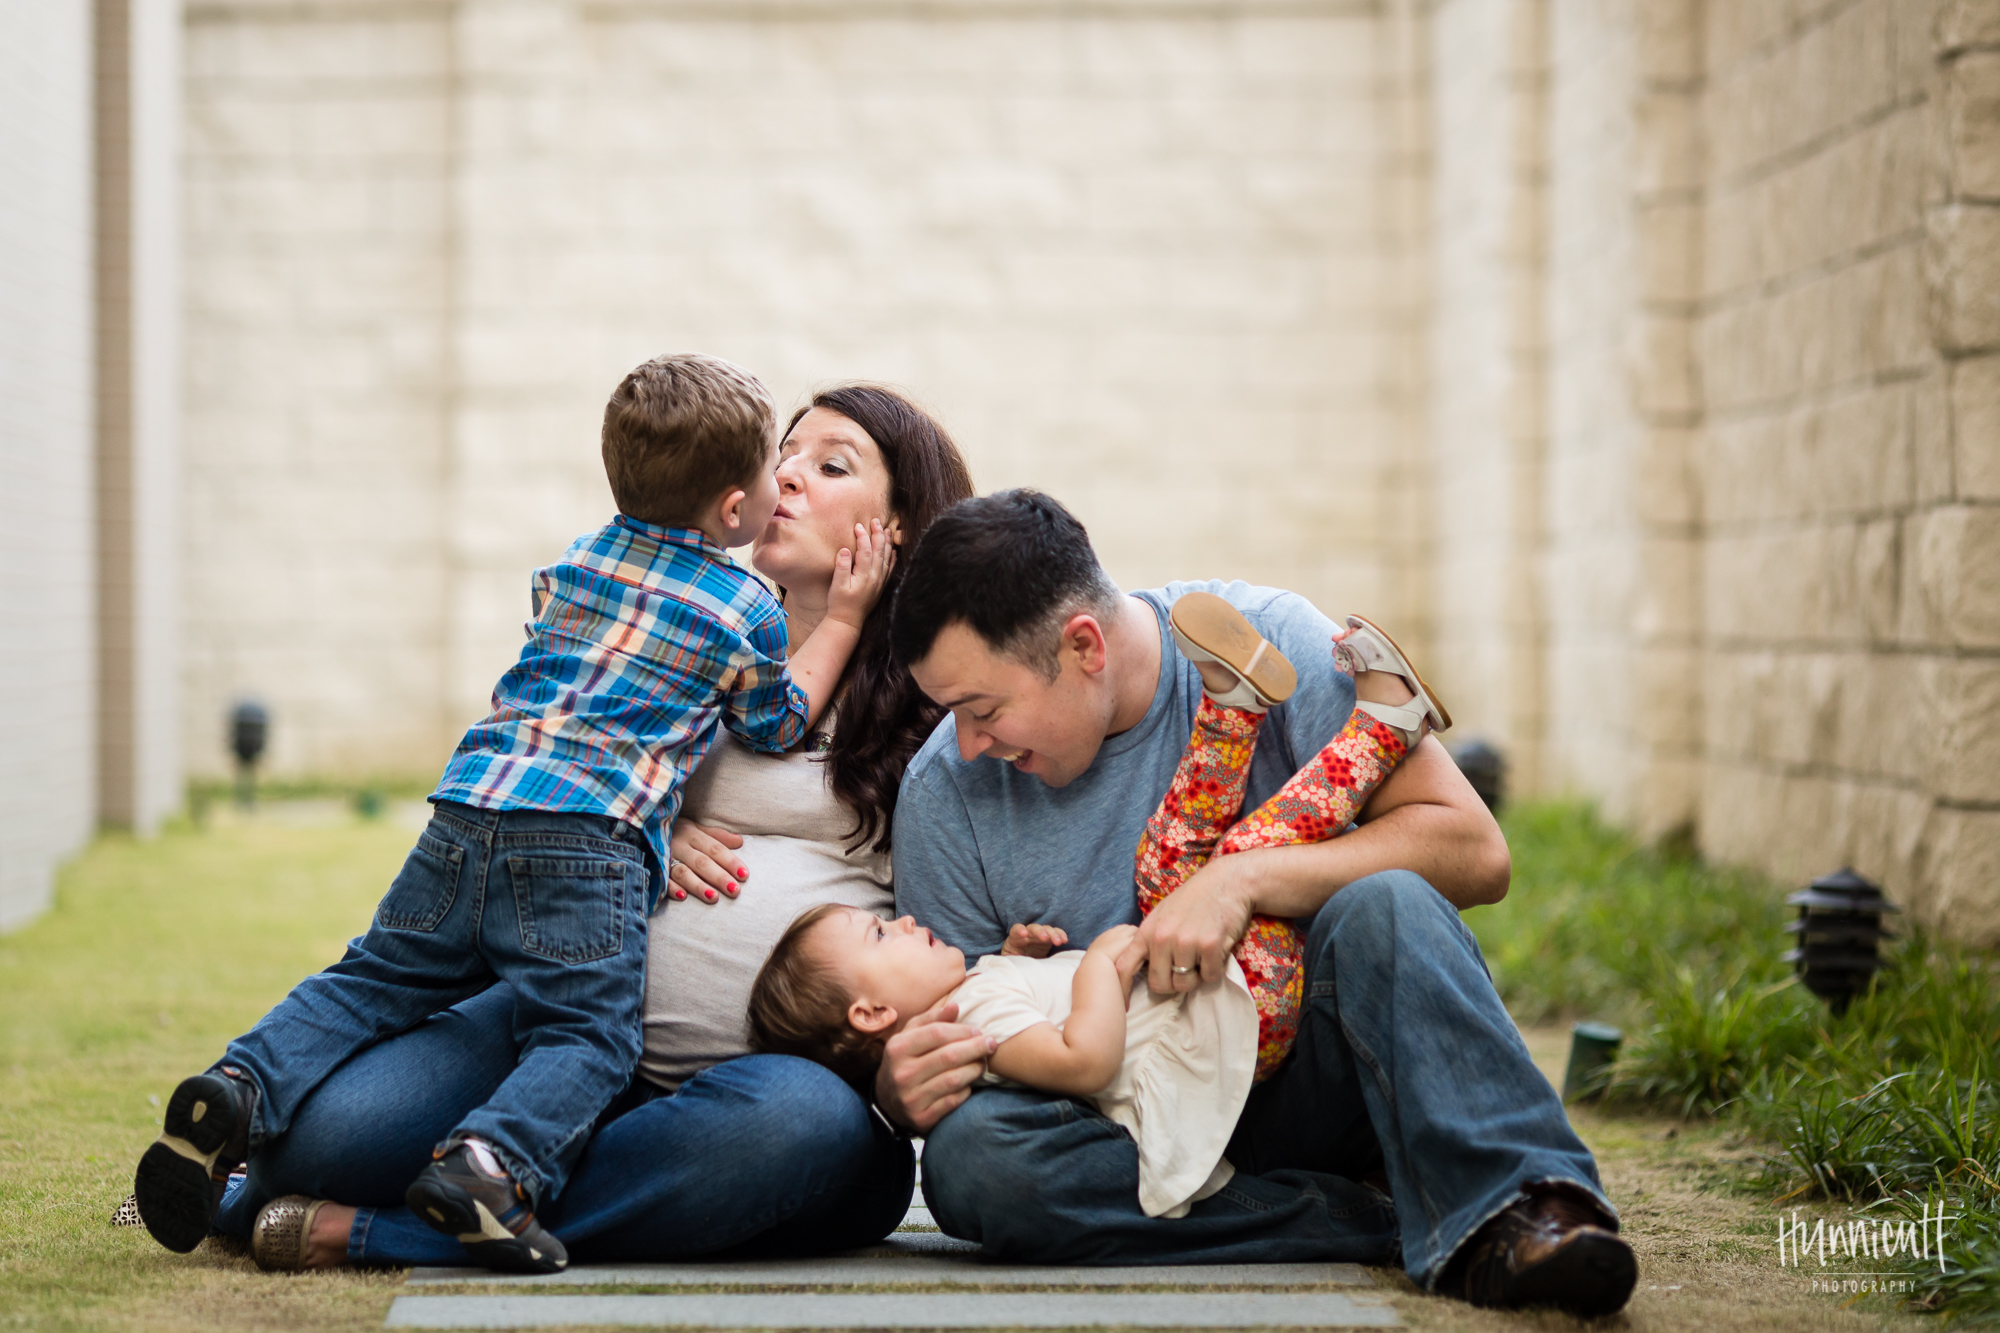 Urban-Maternity-Taiwan-Family-Five-21